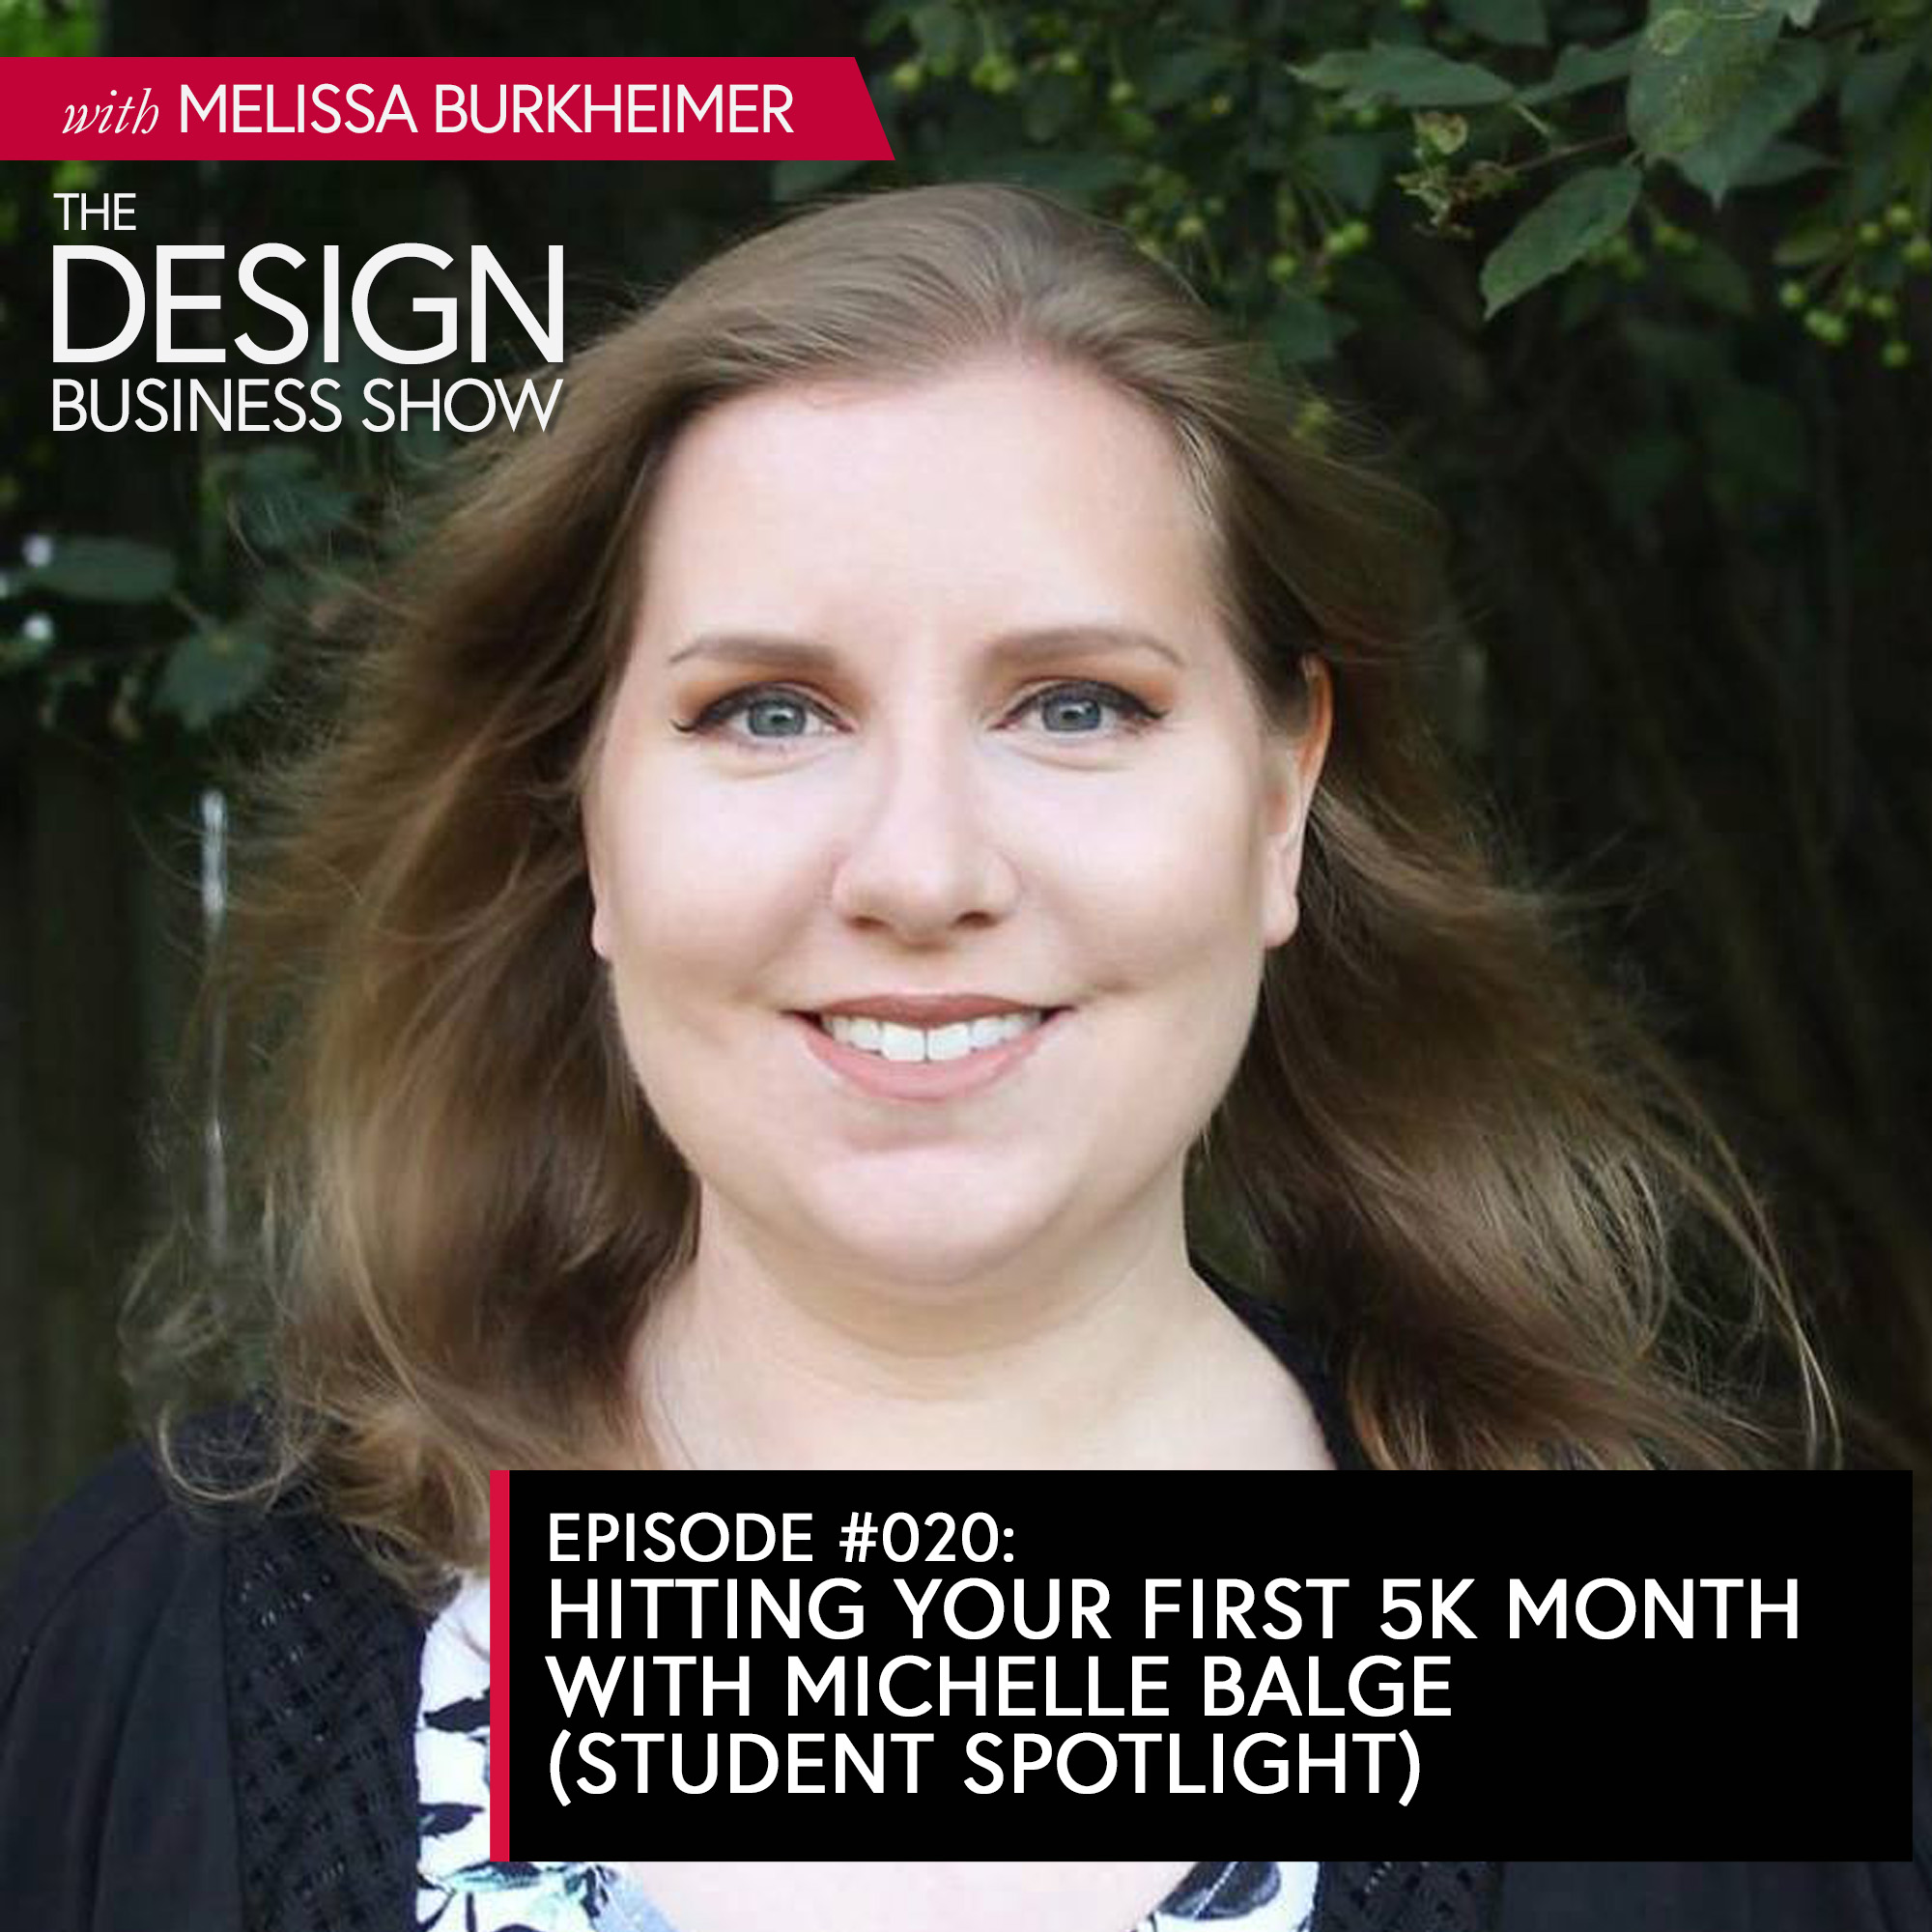 Listen to episode 20 of The Design Business Show with one of my favorite students, Michelle Balge, about the growth of her design business.